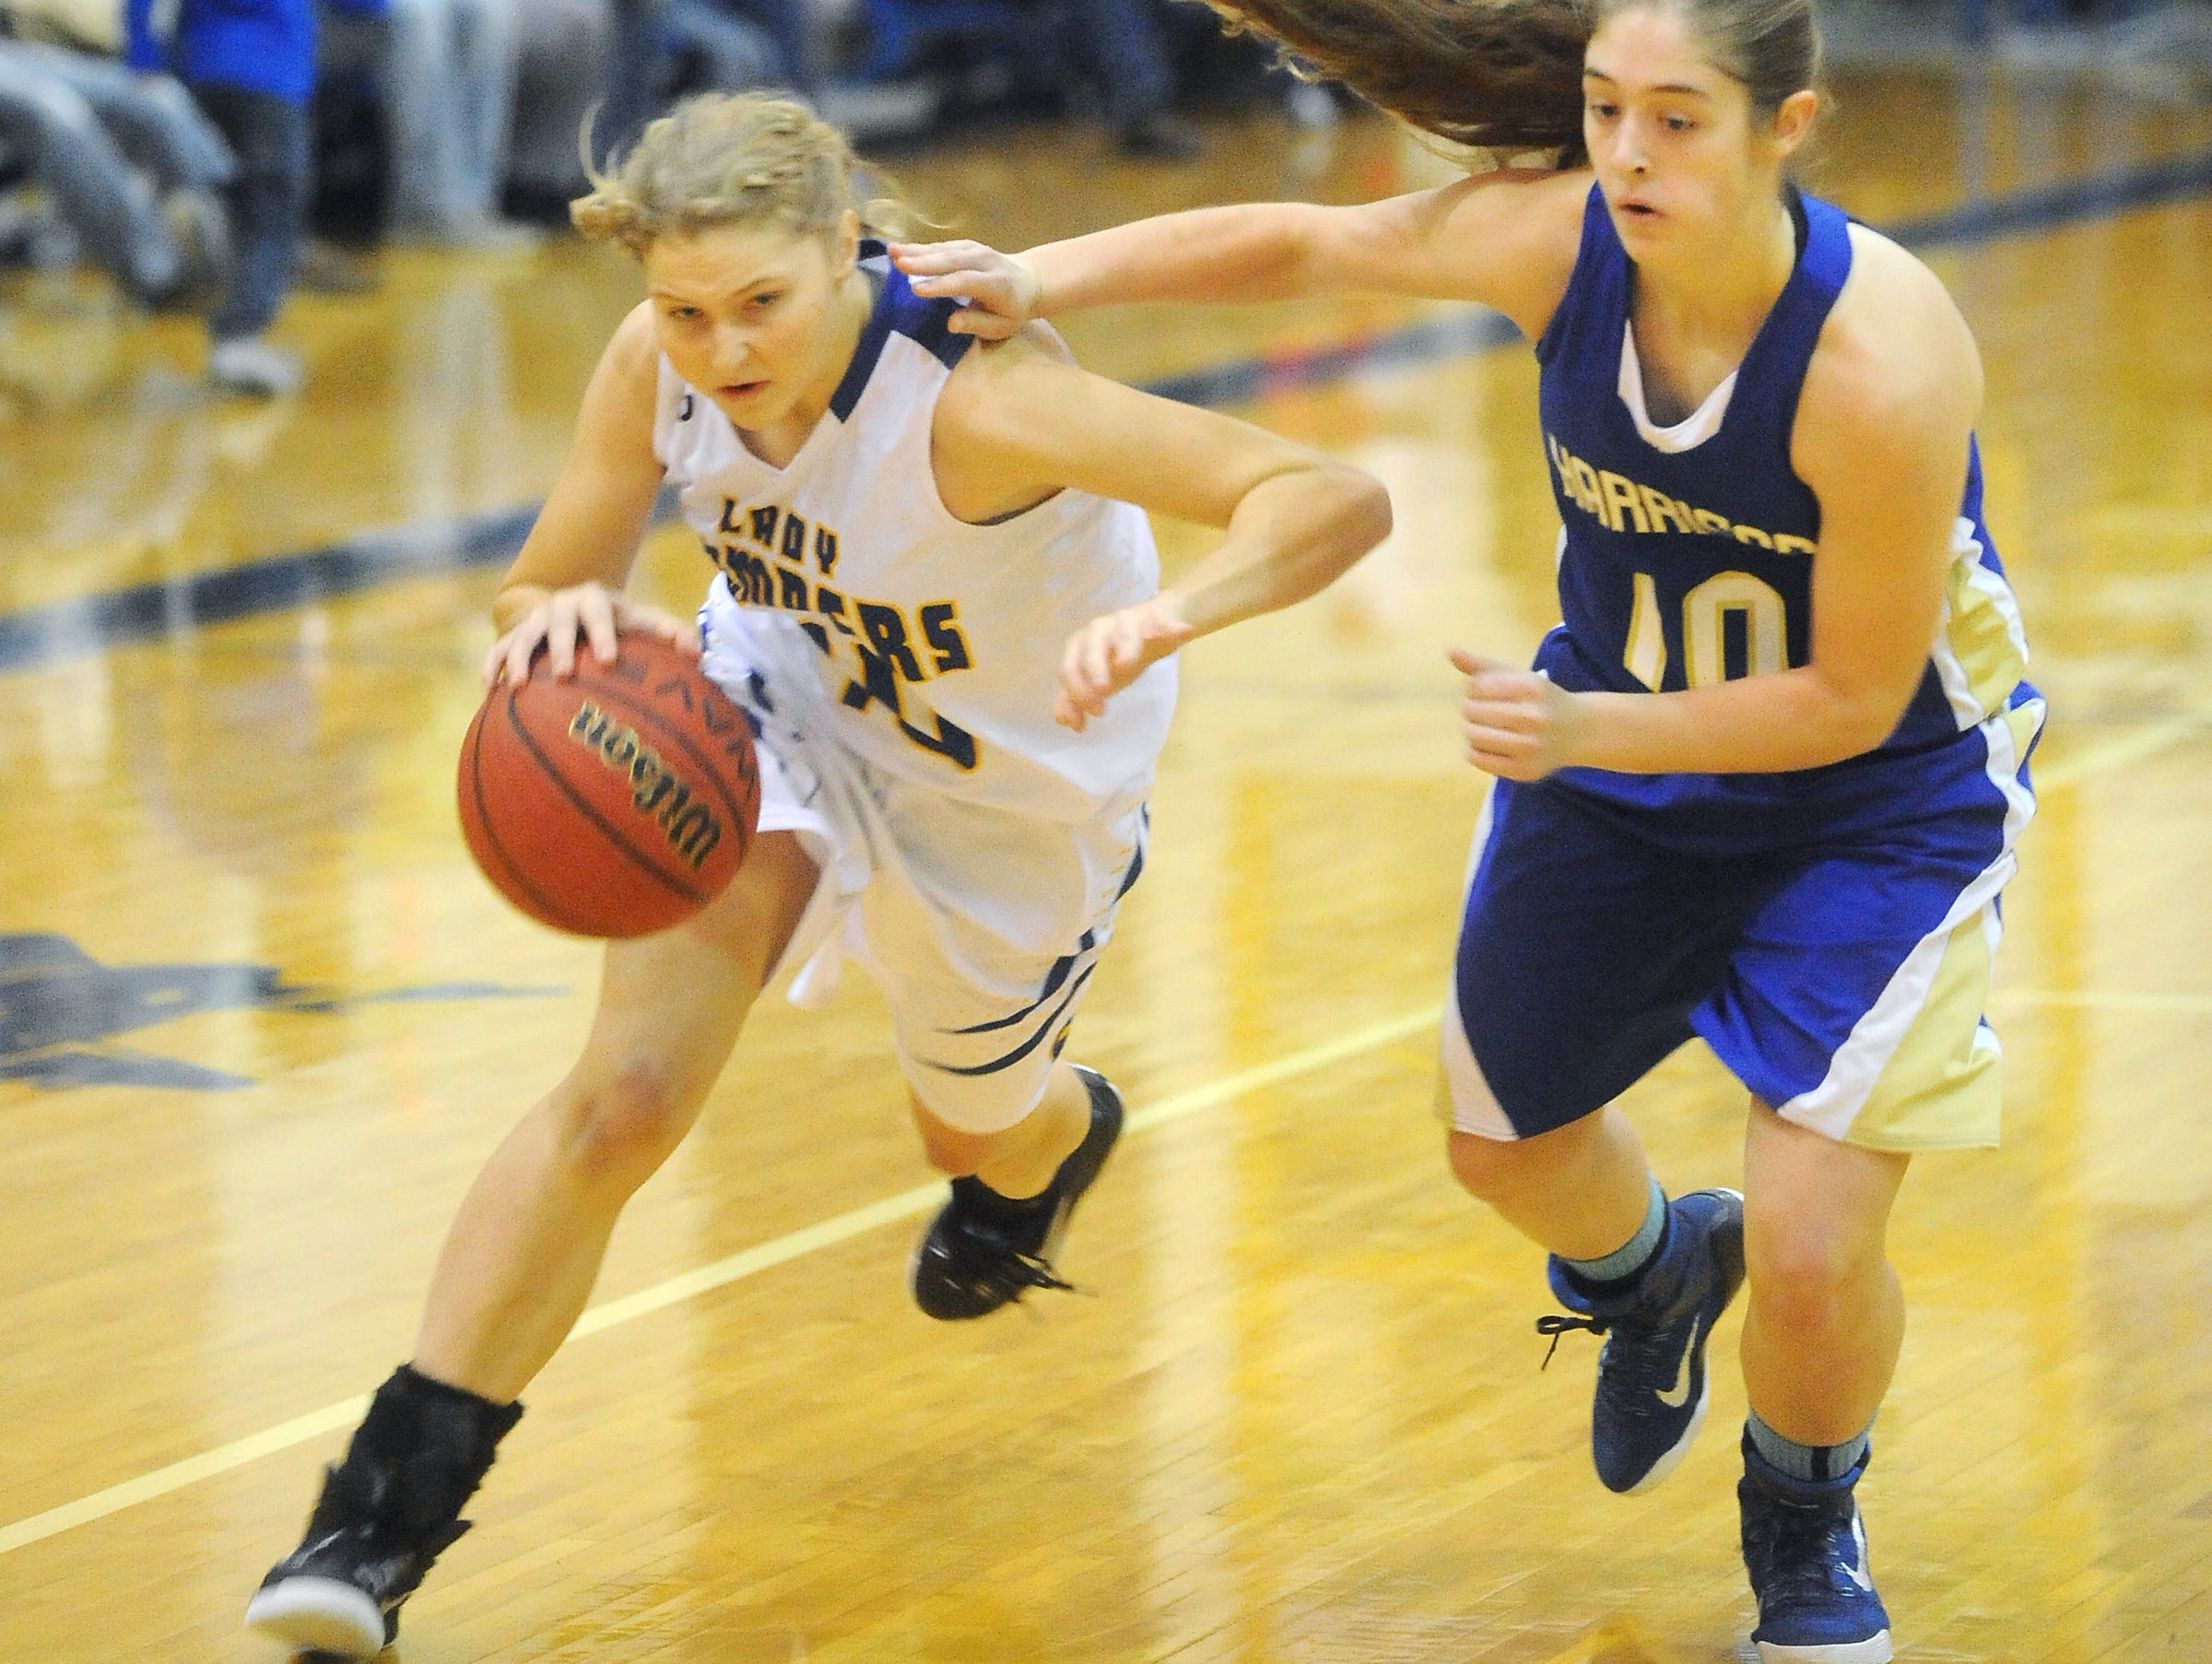 Mountain Home's Sydney Blevins, left, drives past a Harrison player during a game earlier this season. The Lady Bombers traveled to Jonesboro and fell 50-31 to the Lady Hurricane on Friday night.